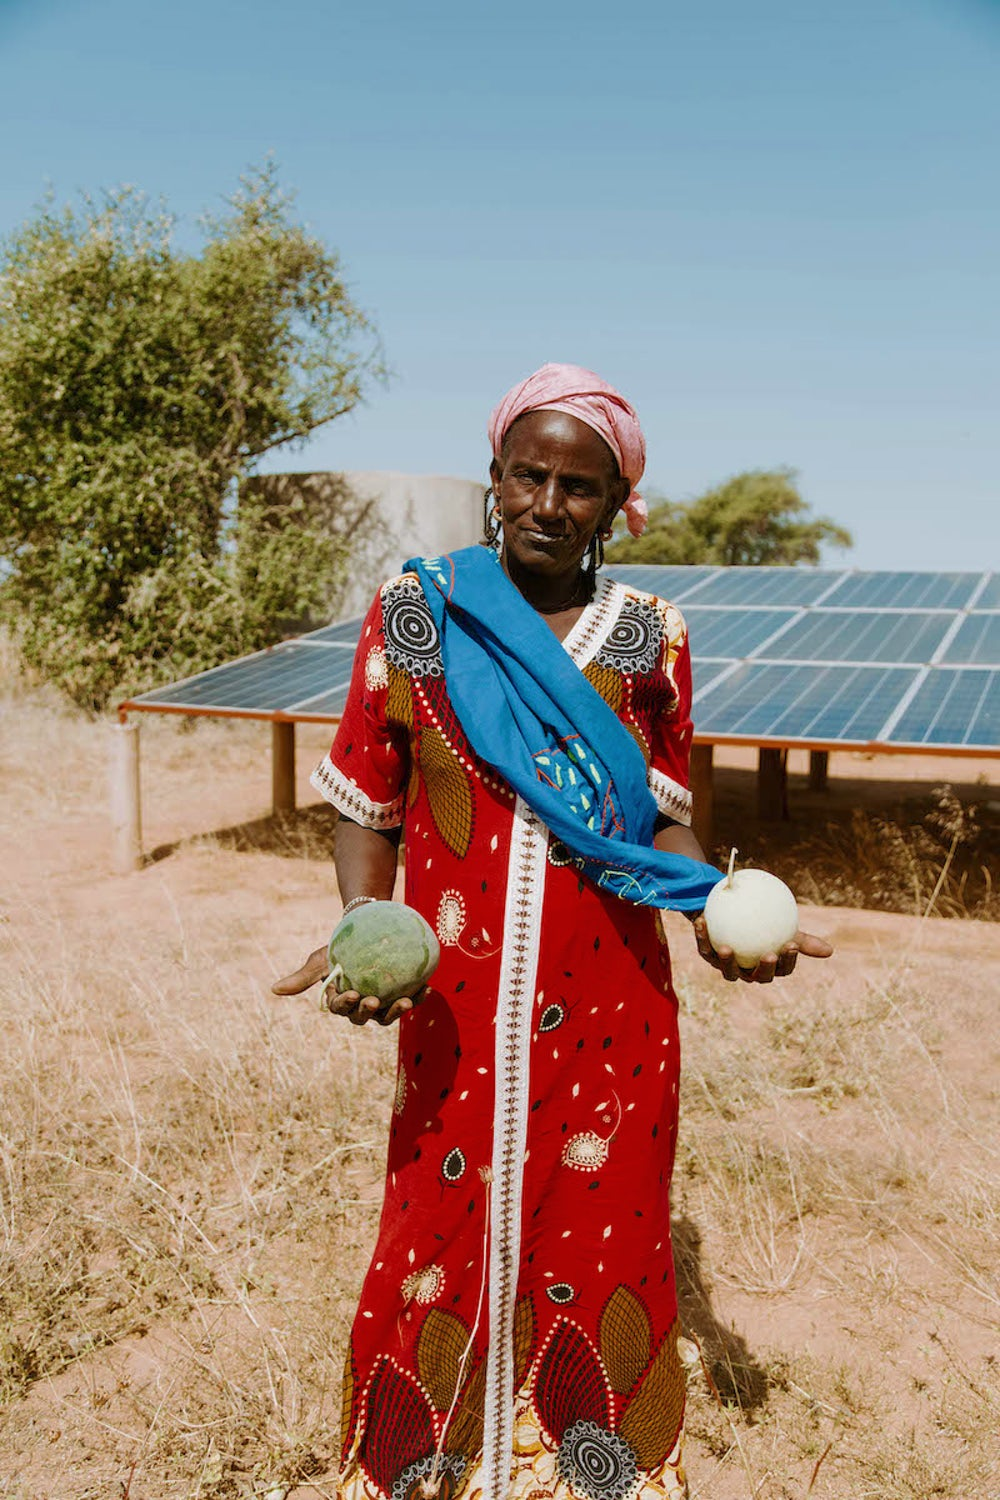 Penda Sow stands in front of the solar panels that power the water pump at a community garden tended by the women of Younoufere. Photo by Lacey West.